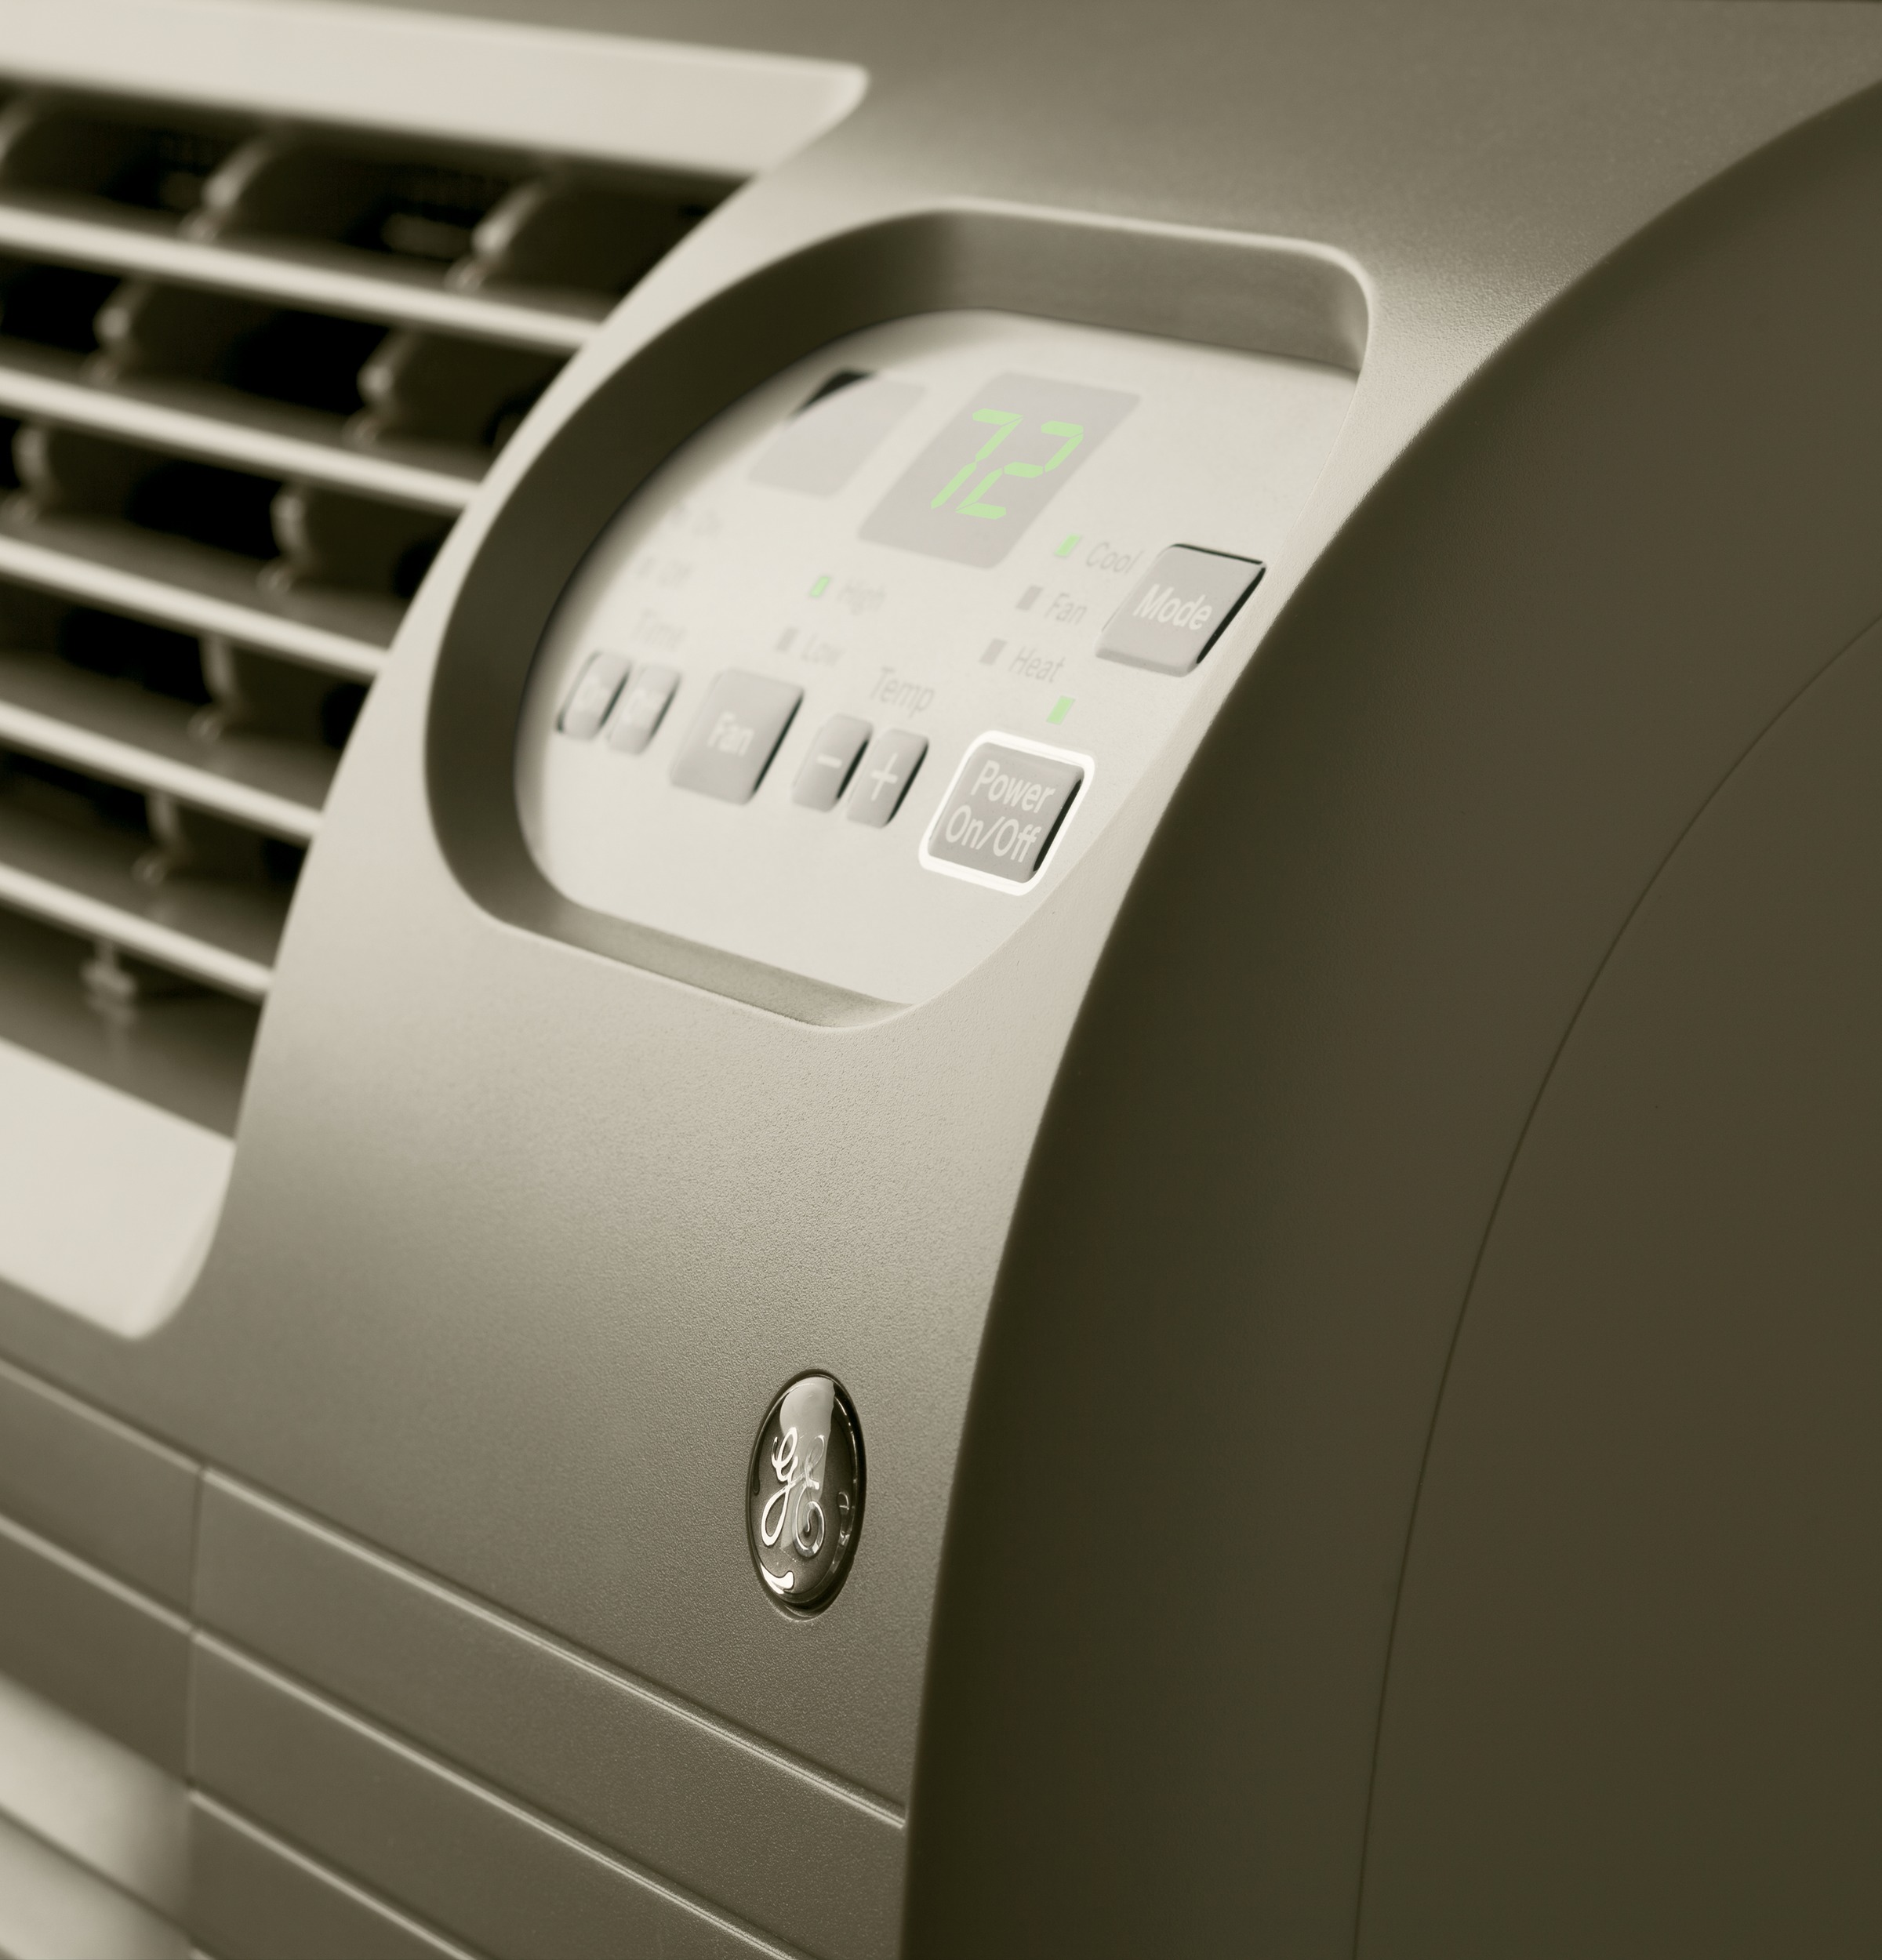 Model: AJEQ08ACF | GE® 115 Volt Built-In Heat/Cool Room Air Conditioner